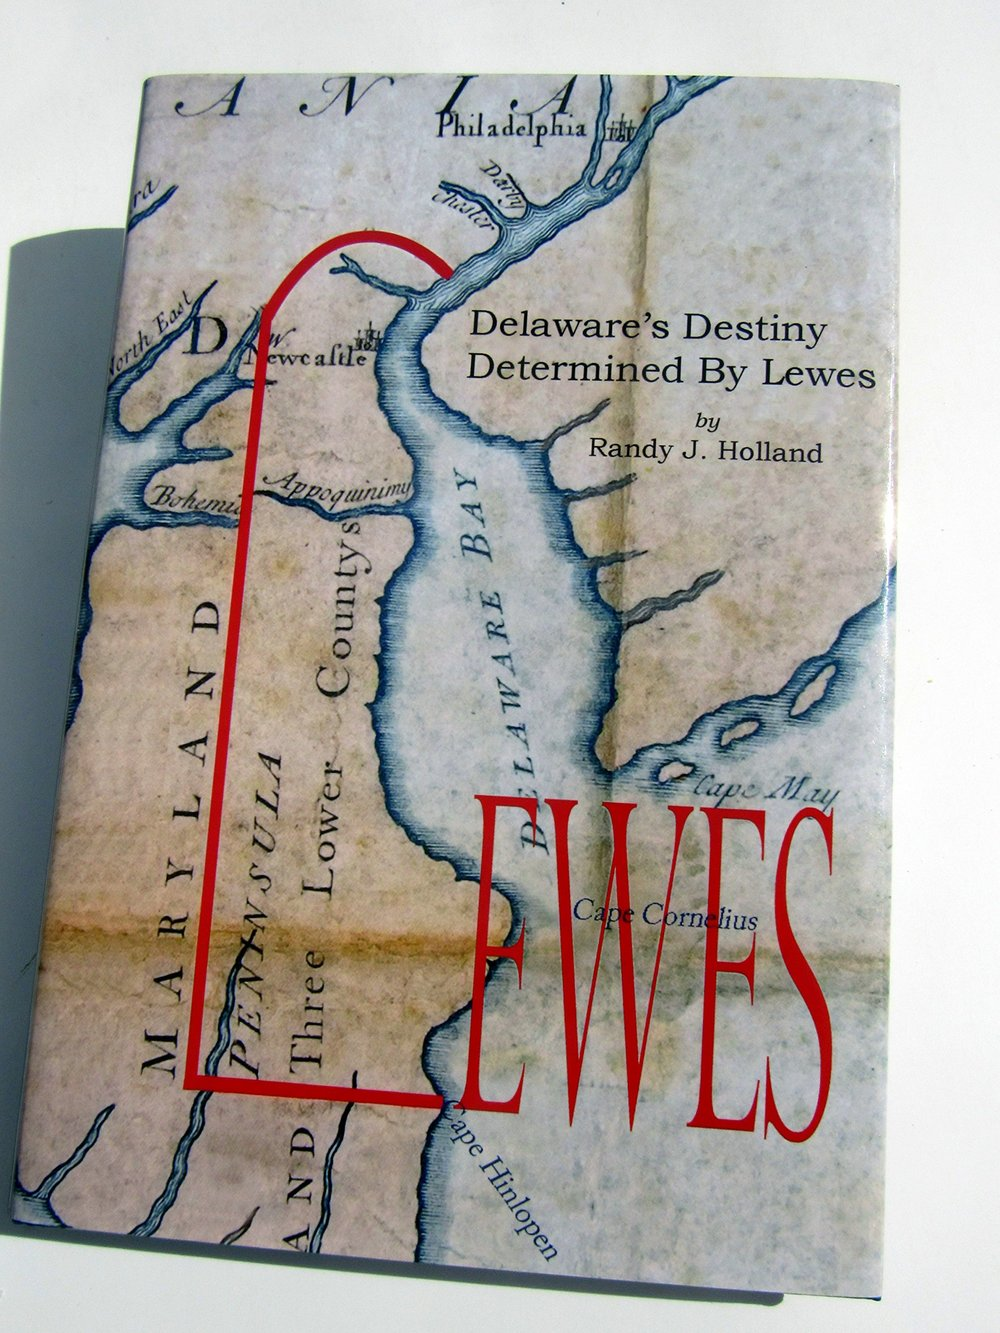 Copy of Delaware's Destiny Determined by Lewes